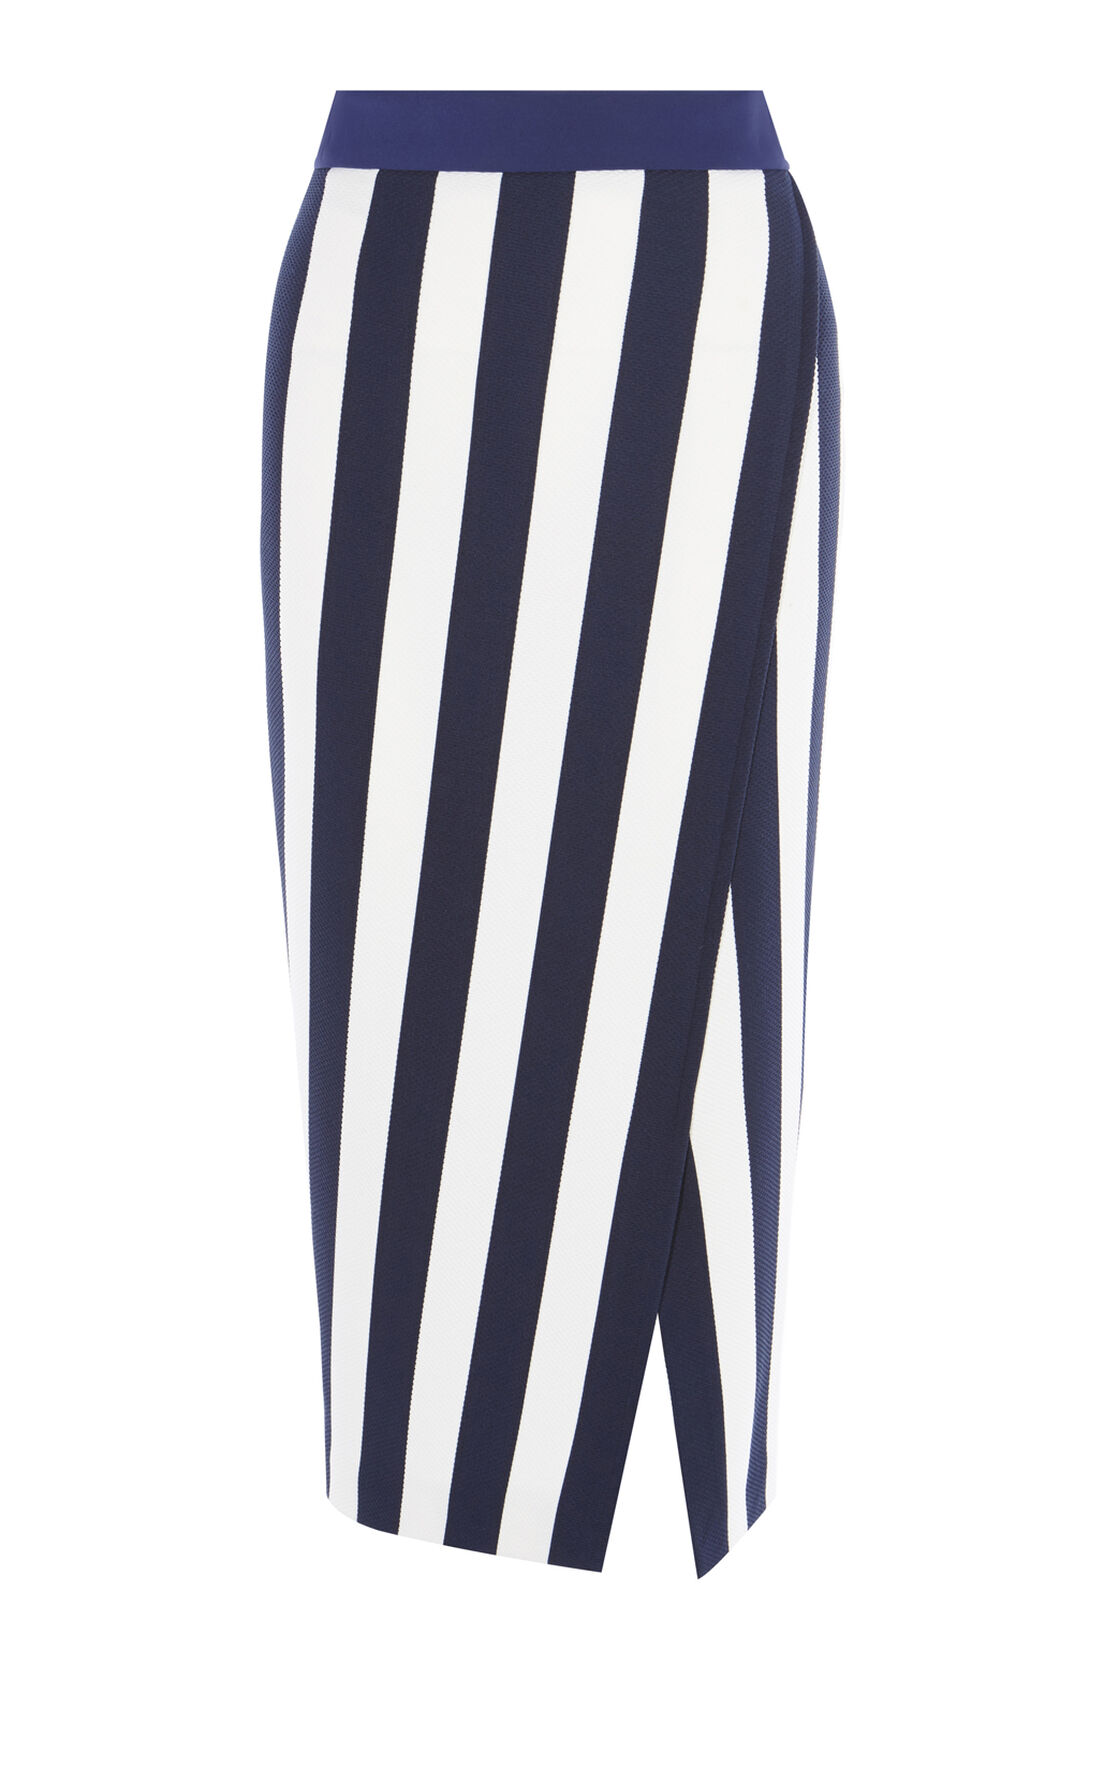 Karen Millen, STRIPED JERSEY SKIRT Blue/Multi 0